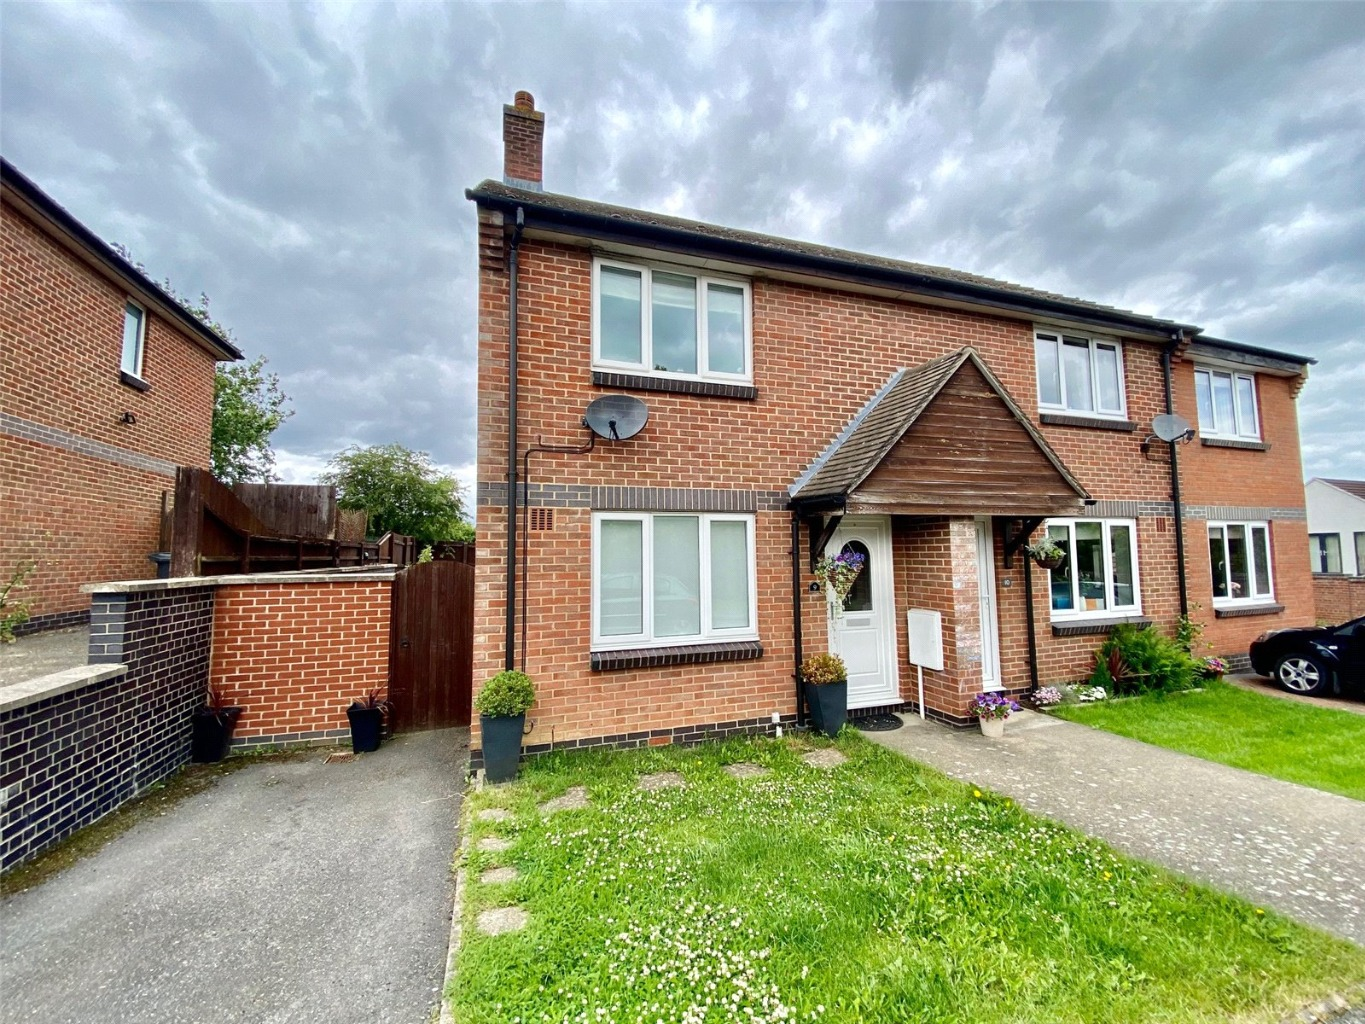 2 bed  for sale in Field Close, St. Neots, PE19